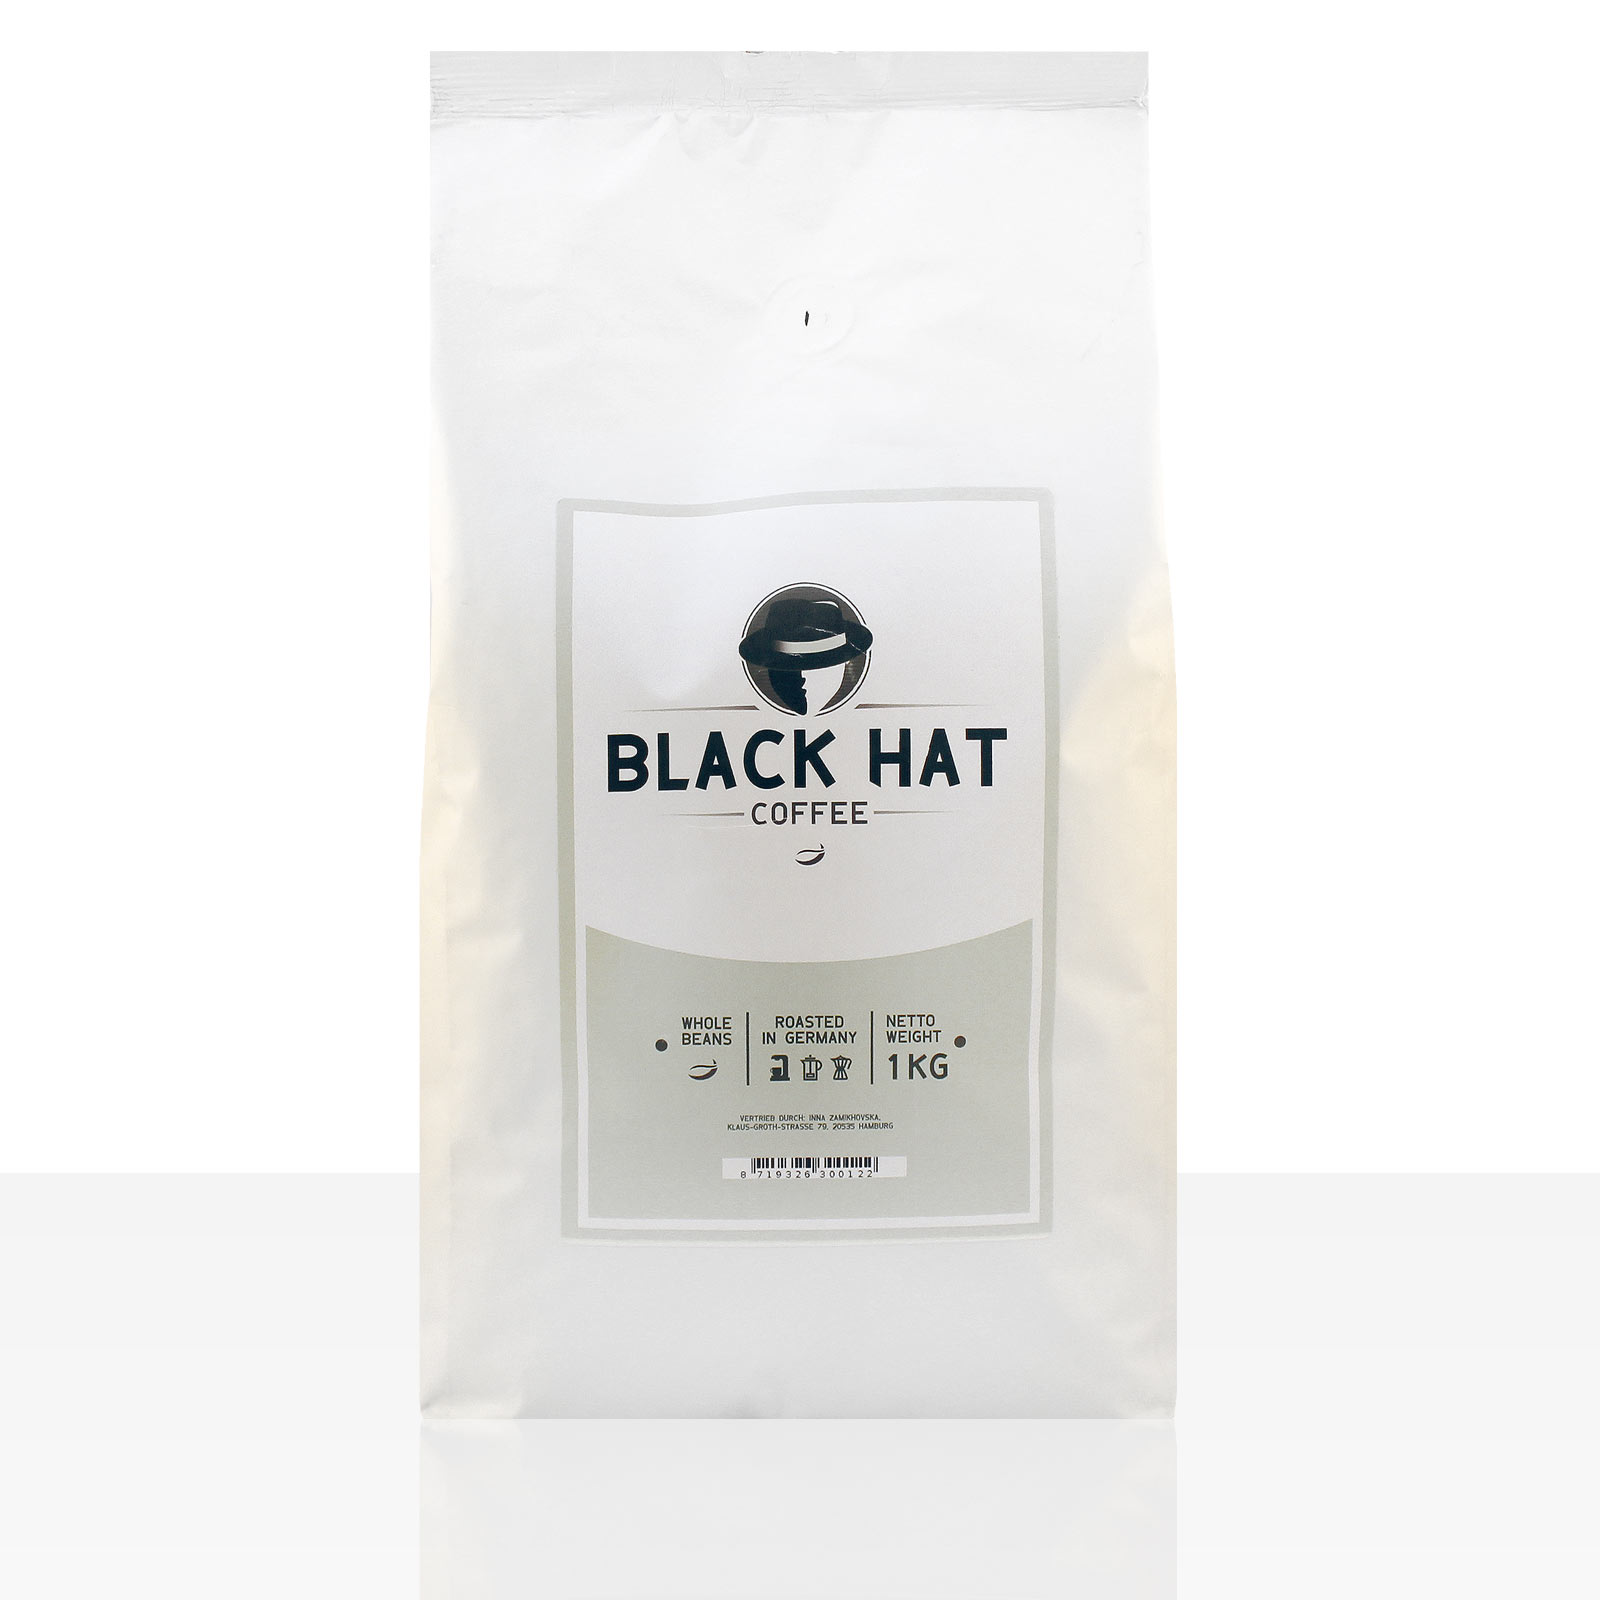 Black Hat Coffee Crema - 12 x 1kg ganze Kaffeebohnen